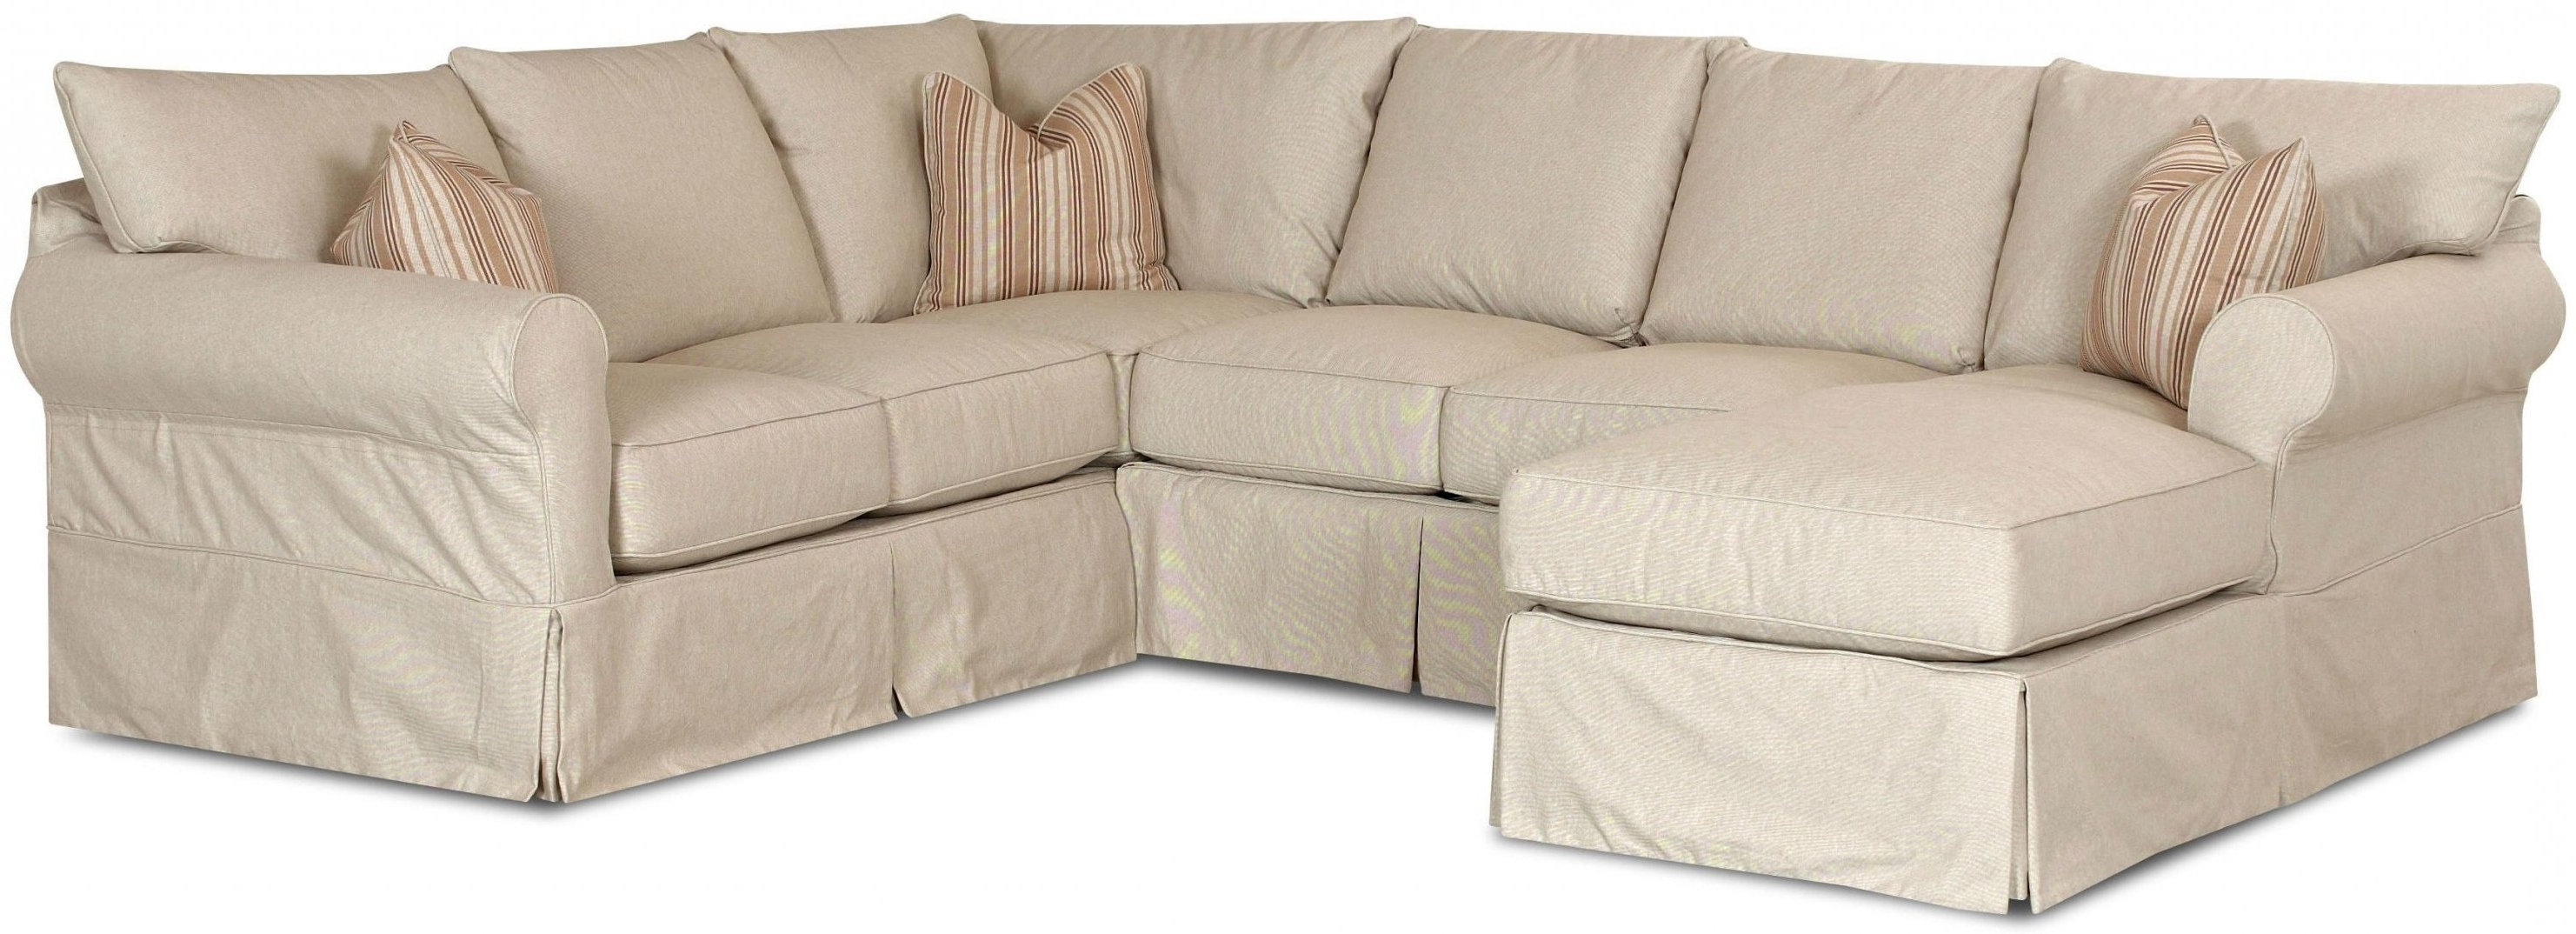 Most Recent Slipcover Sectional Sofas With Chaise Intended For Sectional Sofa Covers Http Ml2R Com Pinterest Chaise Lounge (View 7 of 15)